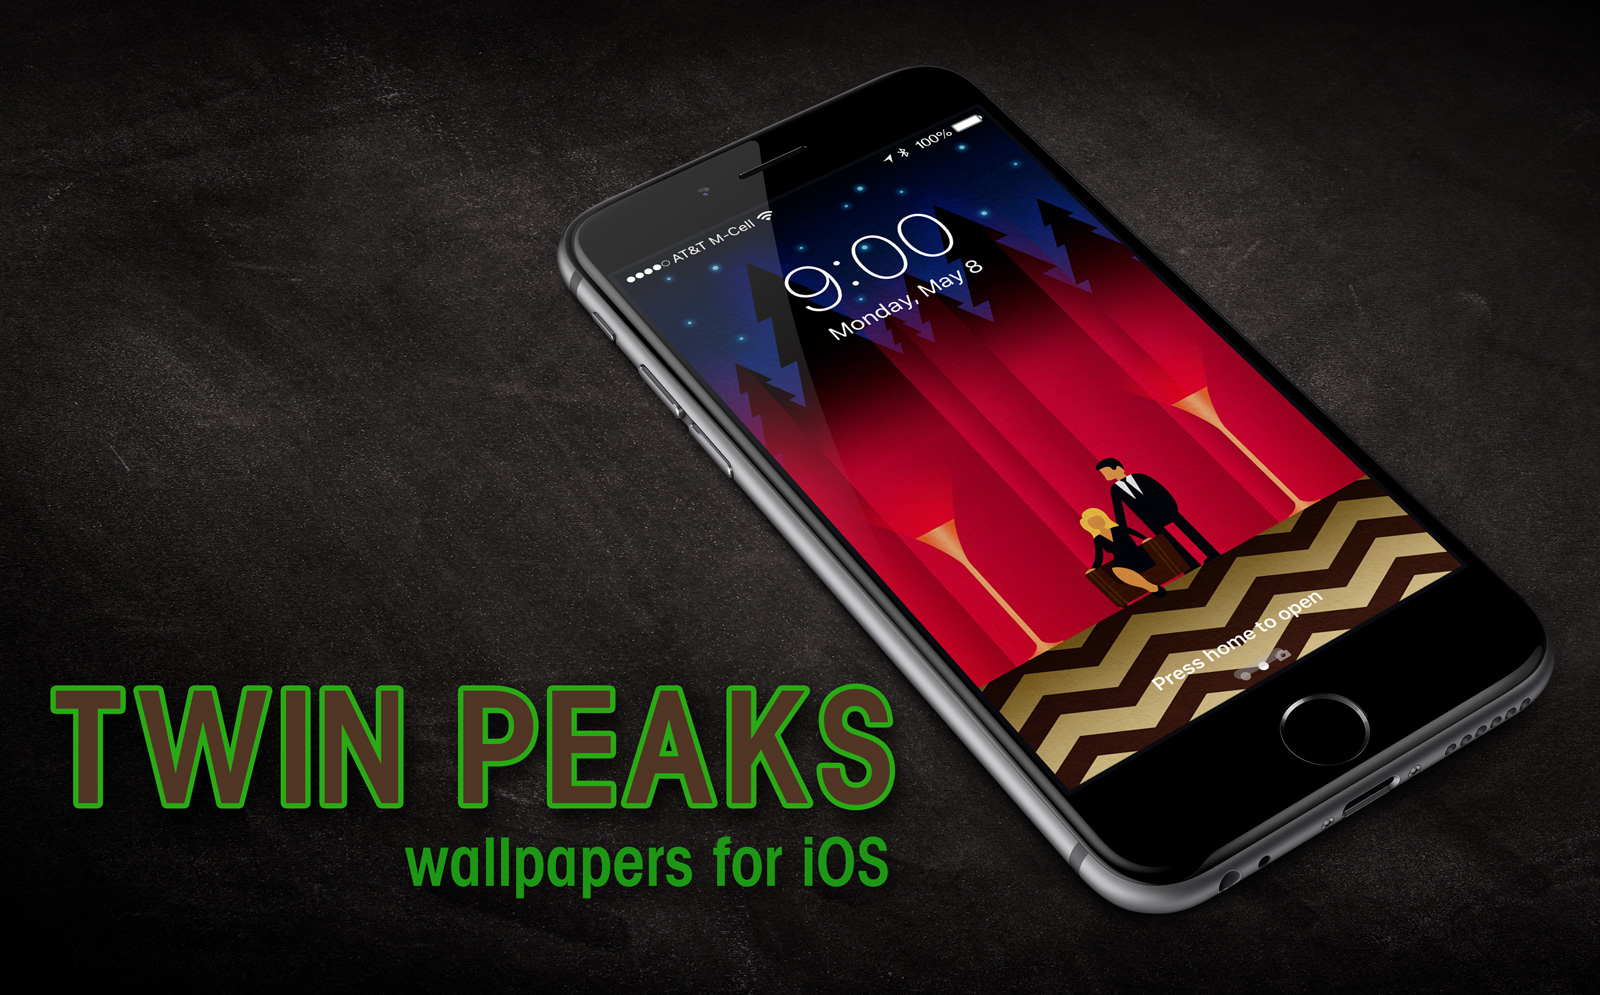 iPhone lock screen showing the Twin Peaks wallpaper